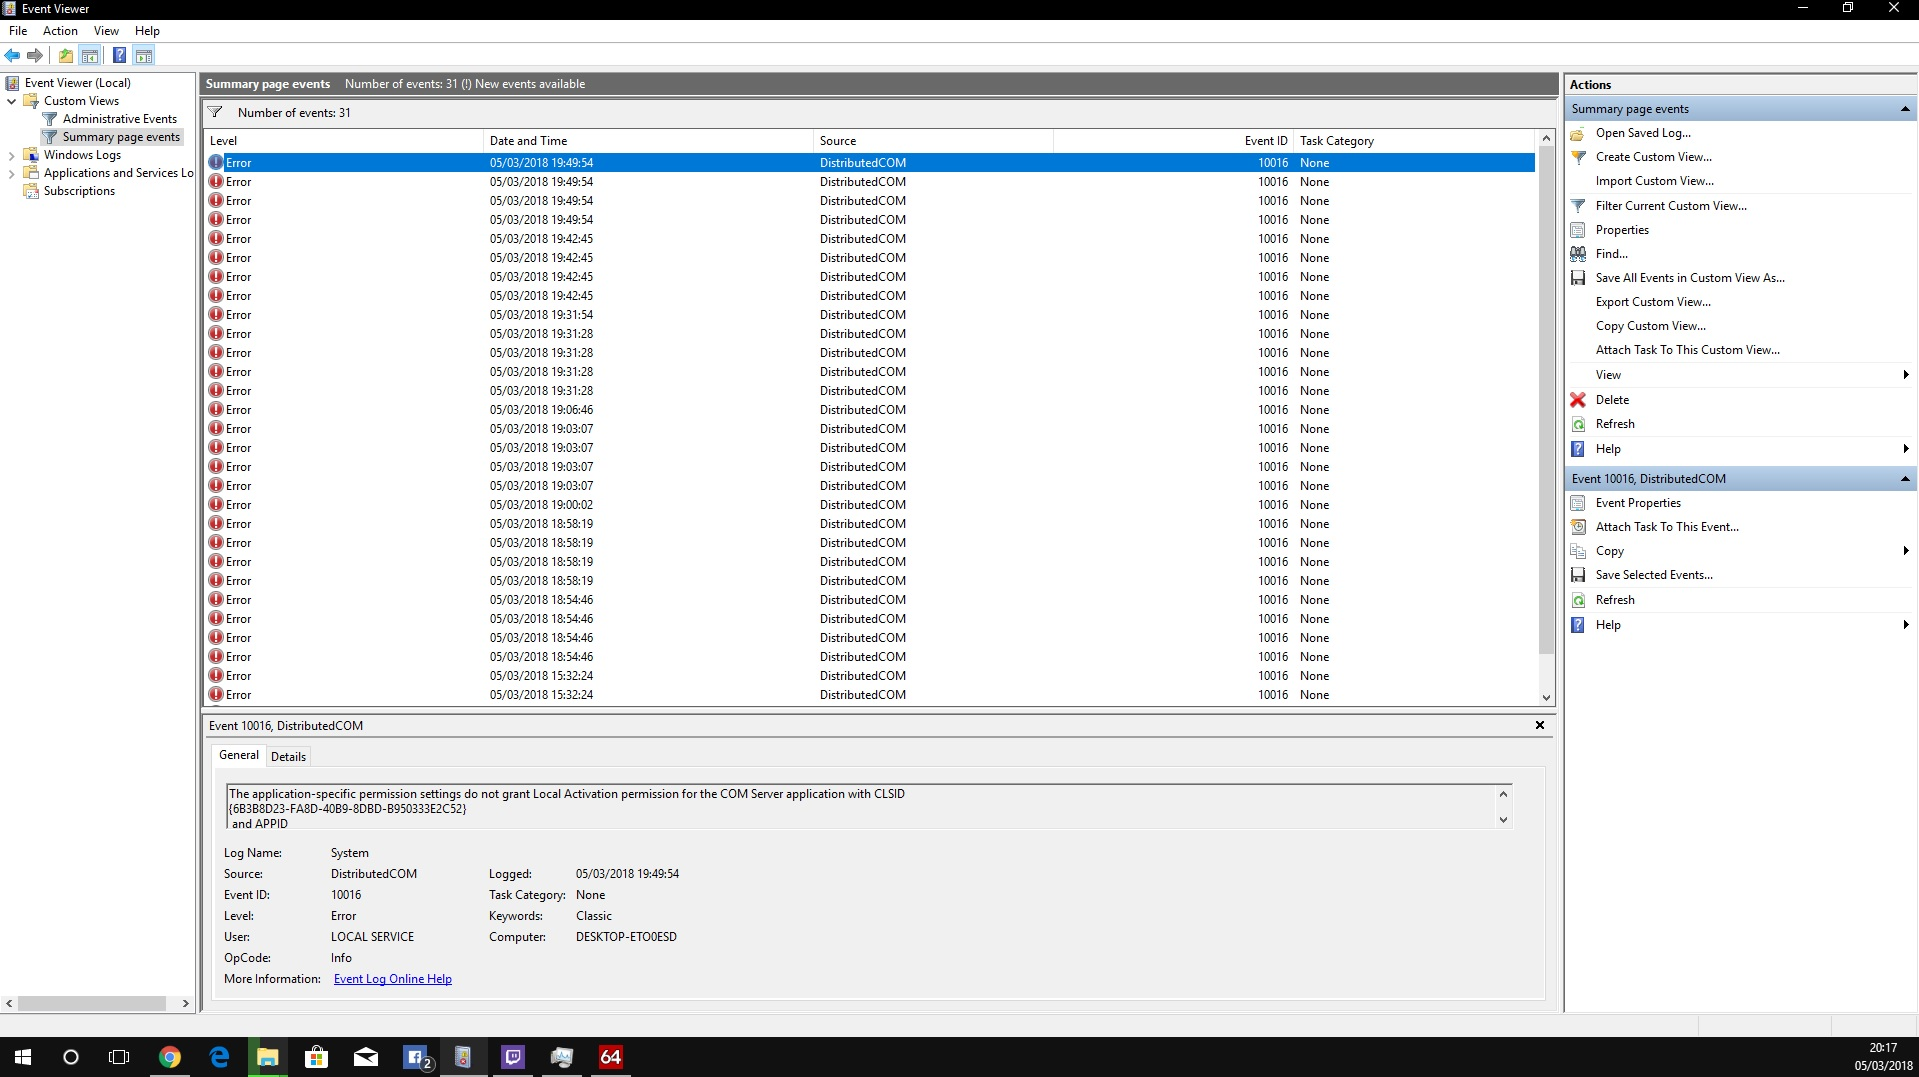 Persistent PC freeze and crash with Dcom 10016 being the